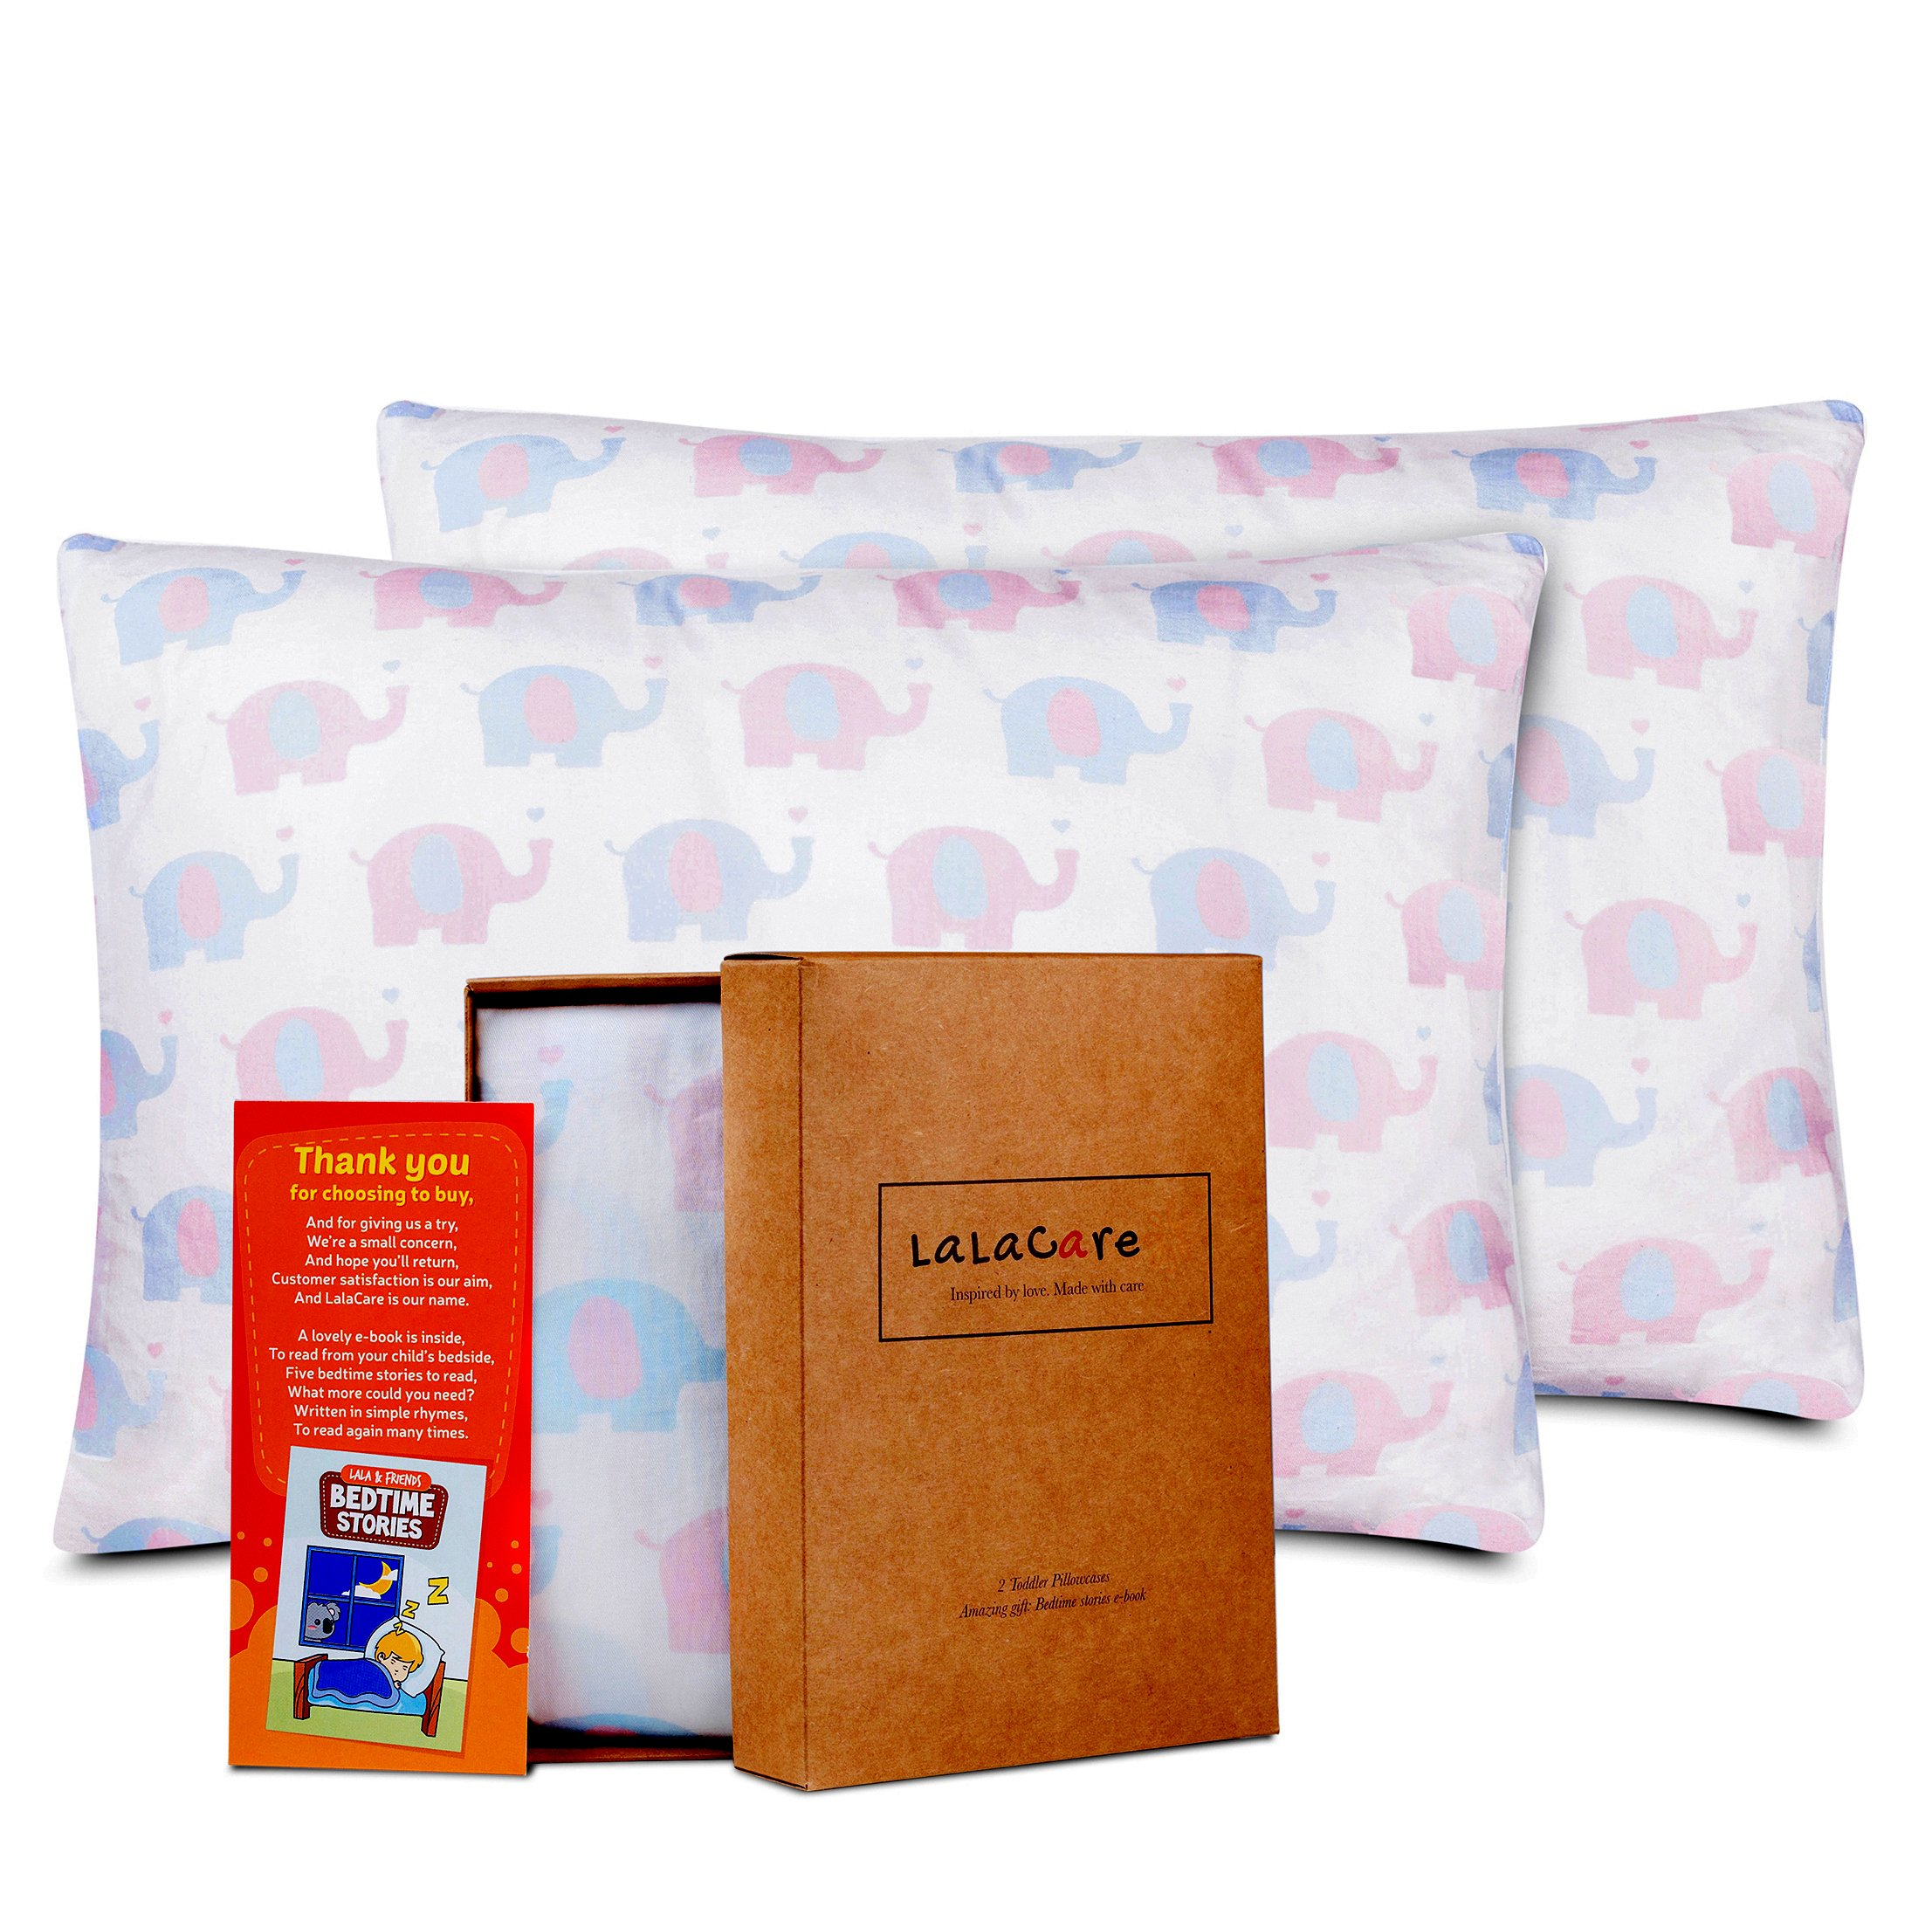 LaLaCare Kids Toddler Pillowcase 2 Pack, 100% Cotton Hypoallergenic/for Bedding and for Travel, Envelope Style, Fits Toddler Pillow Size 13X18 and 14X19 + Bedtime Stories eBook